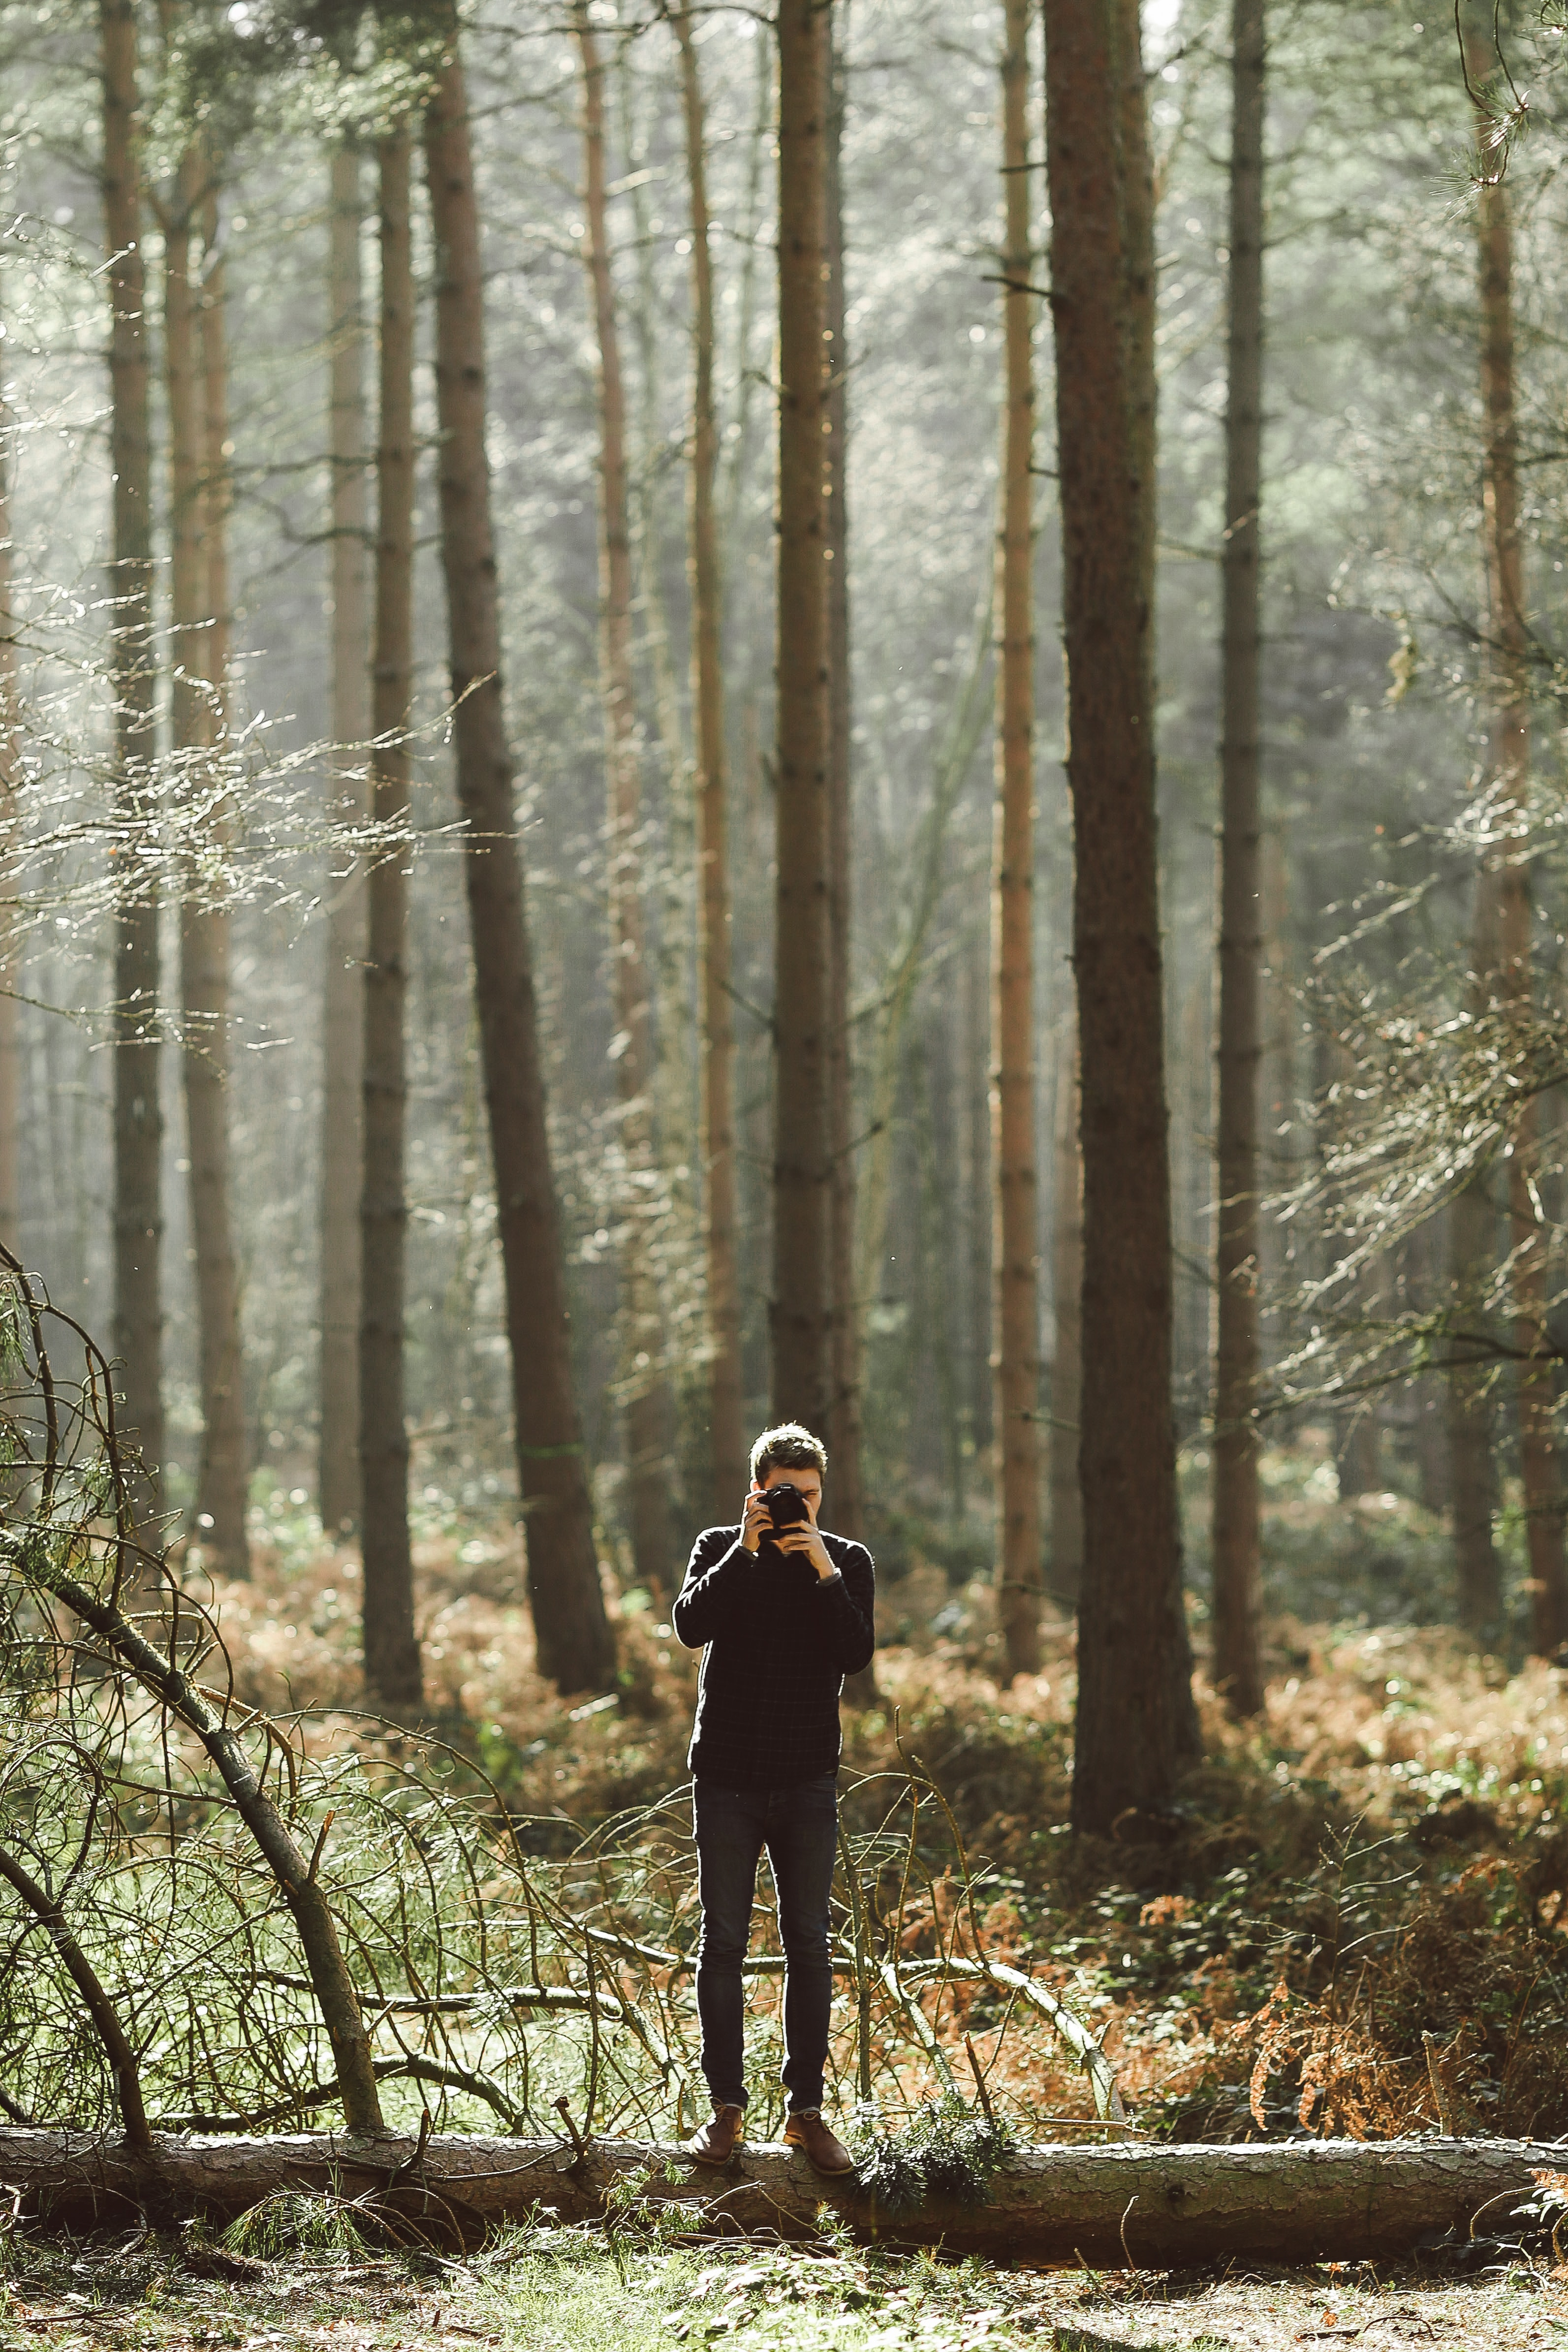 A photographer taking a picture in a forest